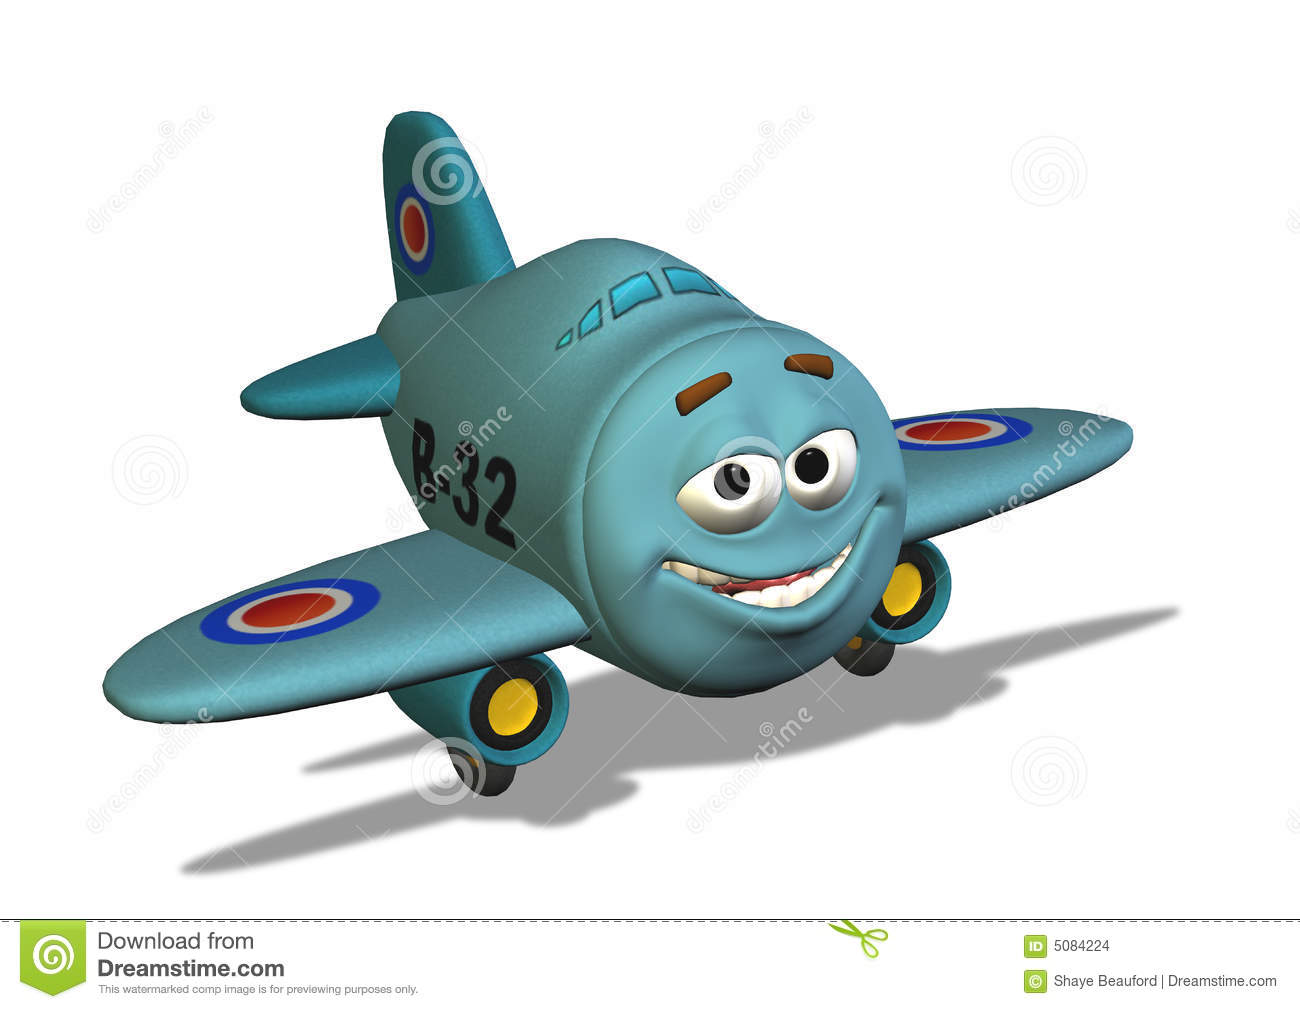 Smiley Airplane with Clipping Path